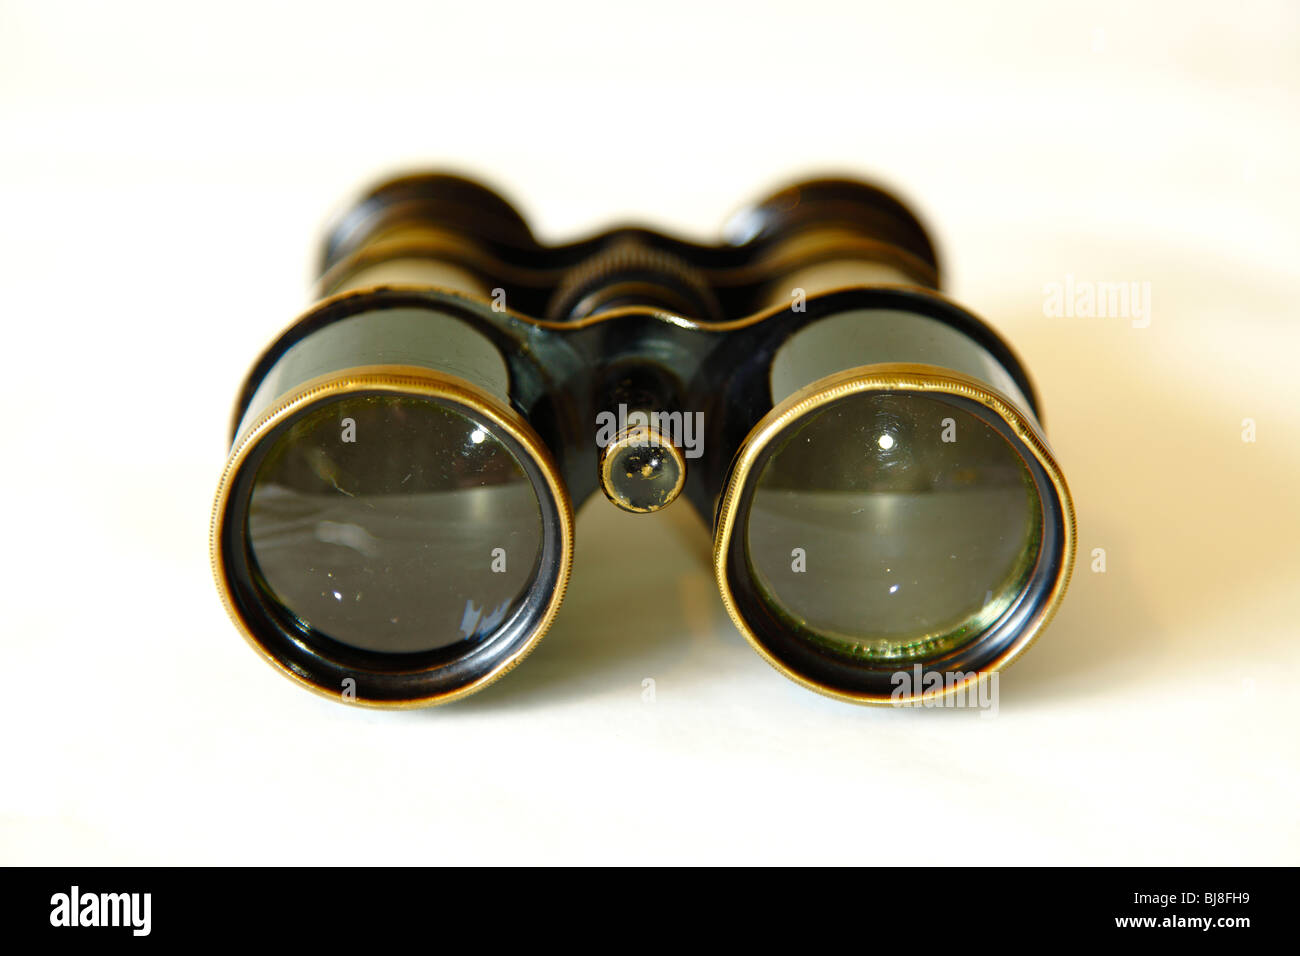 Old antique vintage brass and steel Binoculars or field glasses. - Stock Image